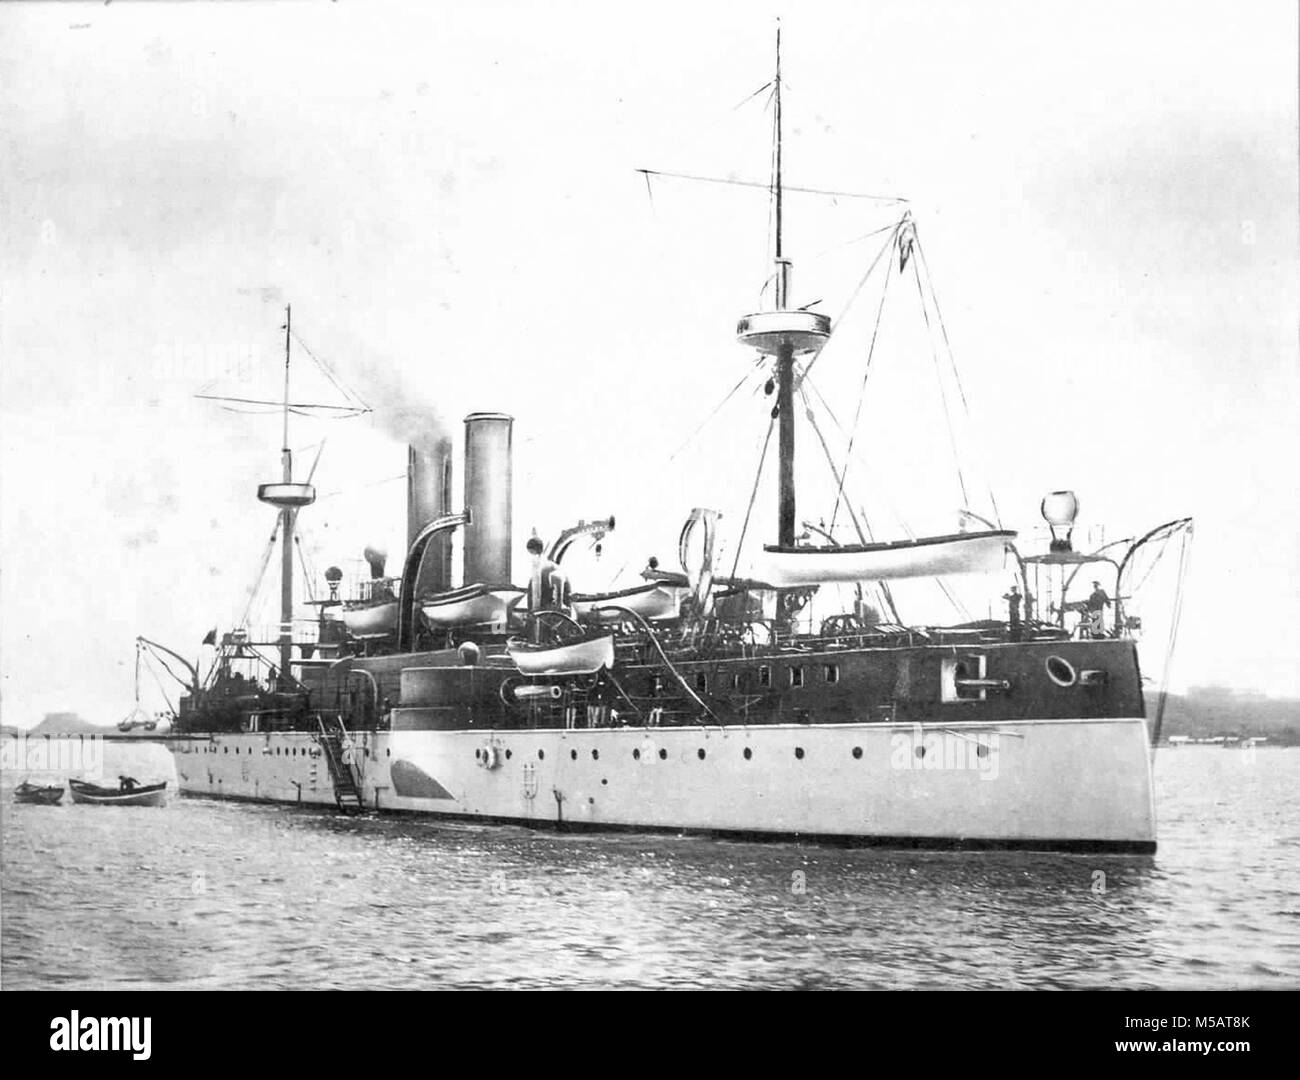 USS Maine (ACR-1) American naval ship that sank in Havana Harbor Stock Photo